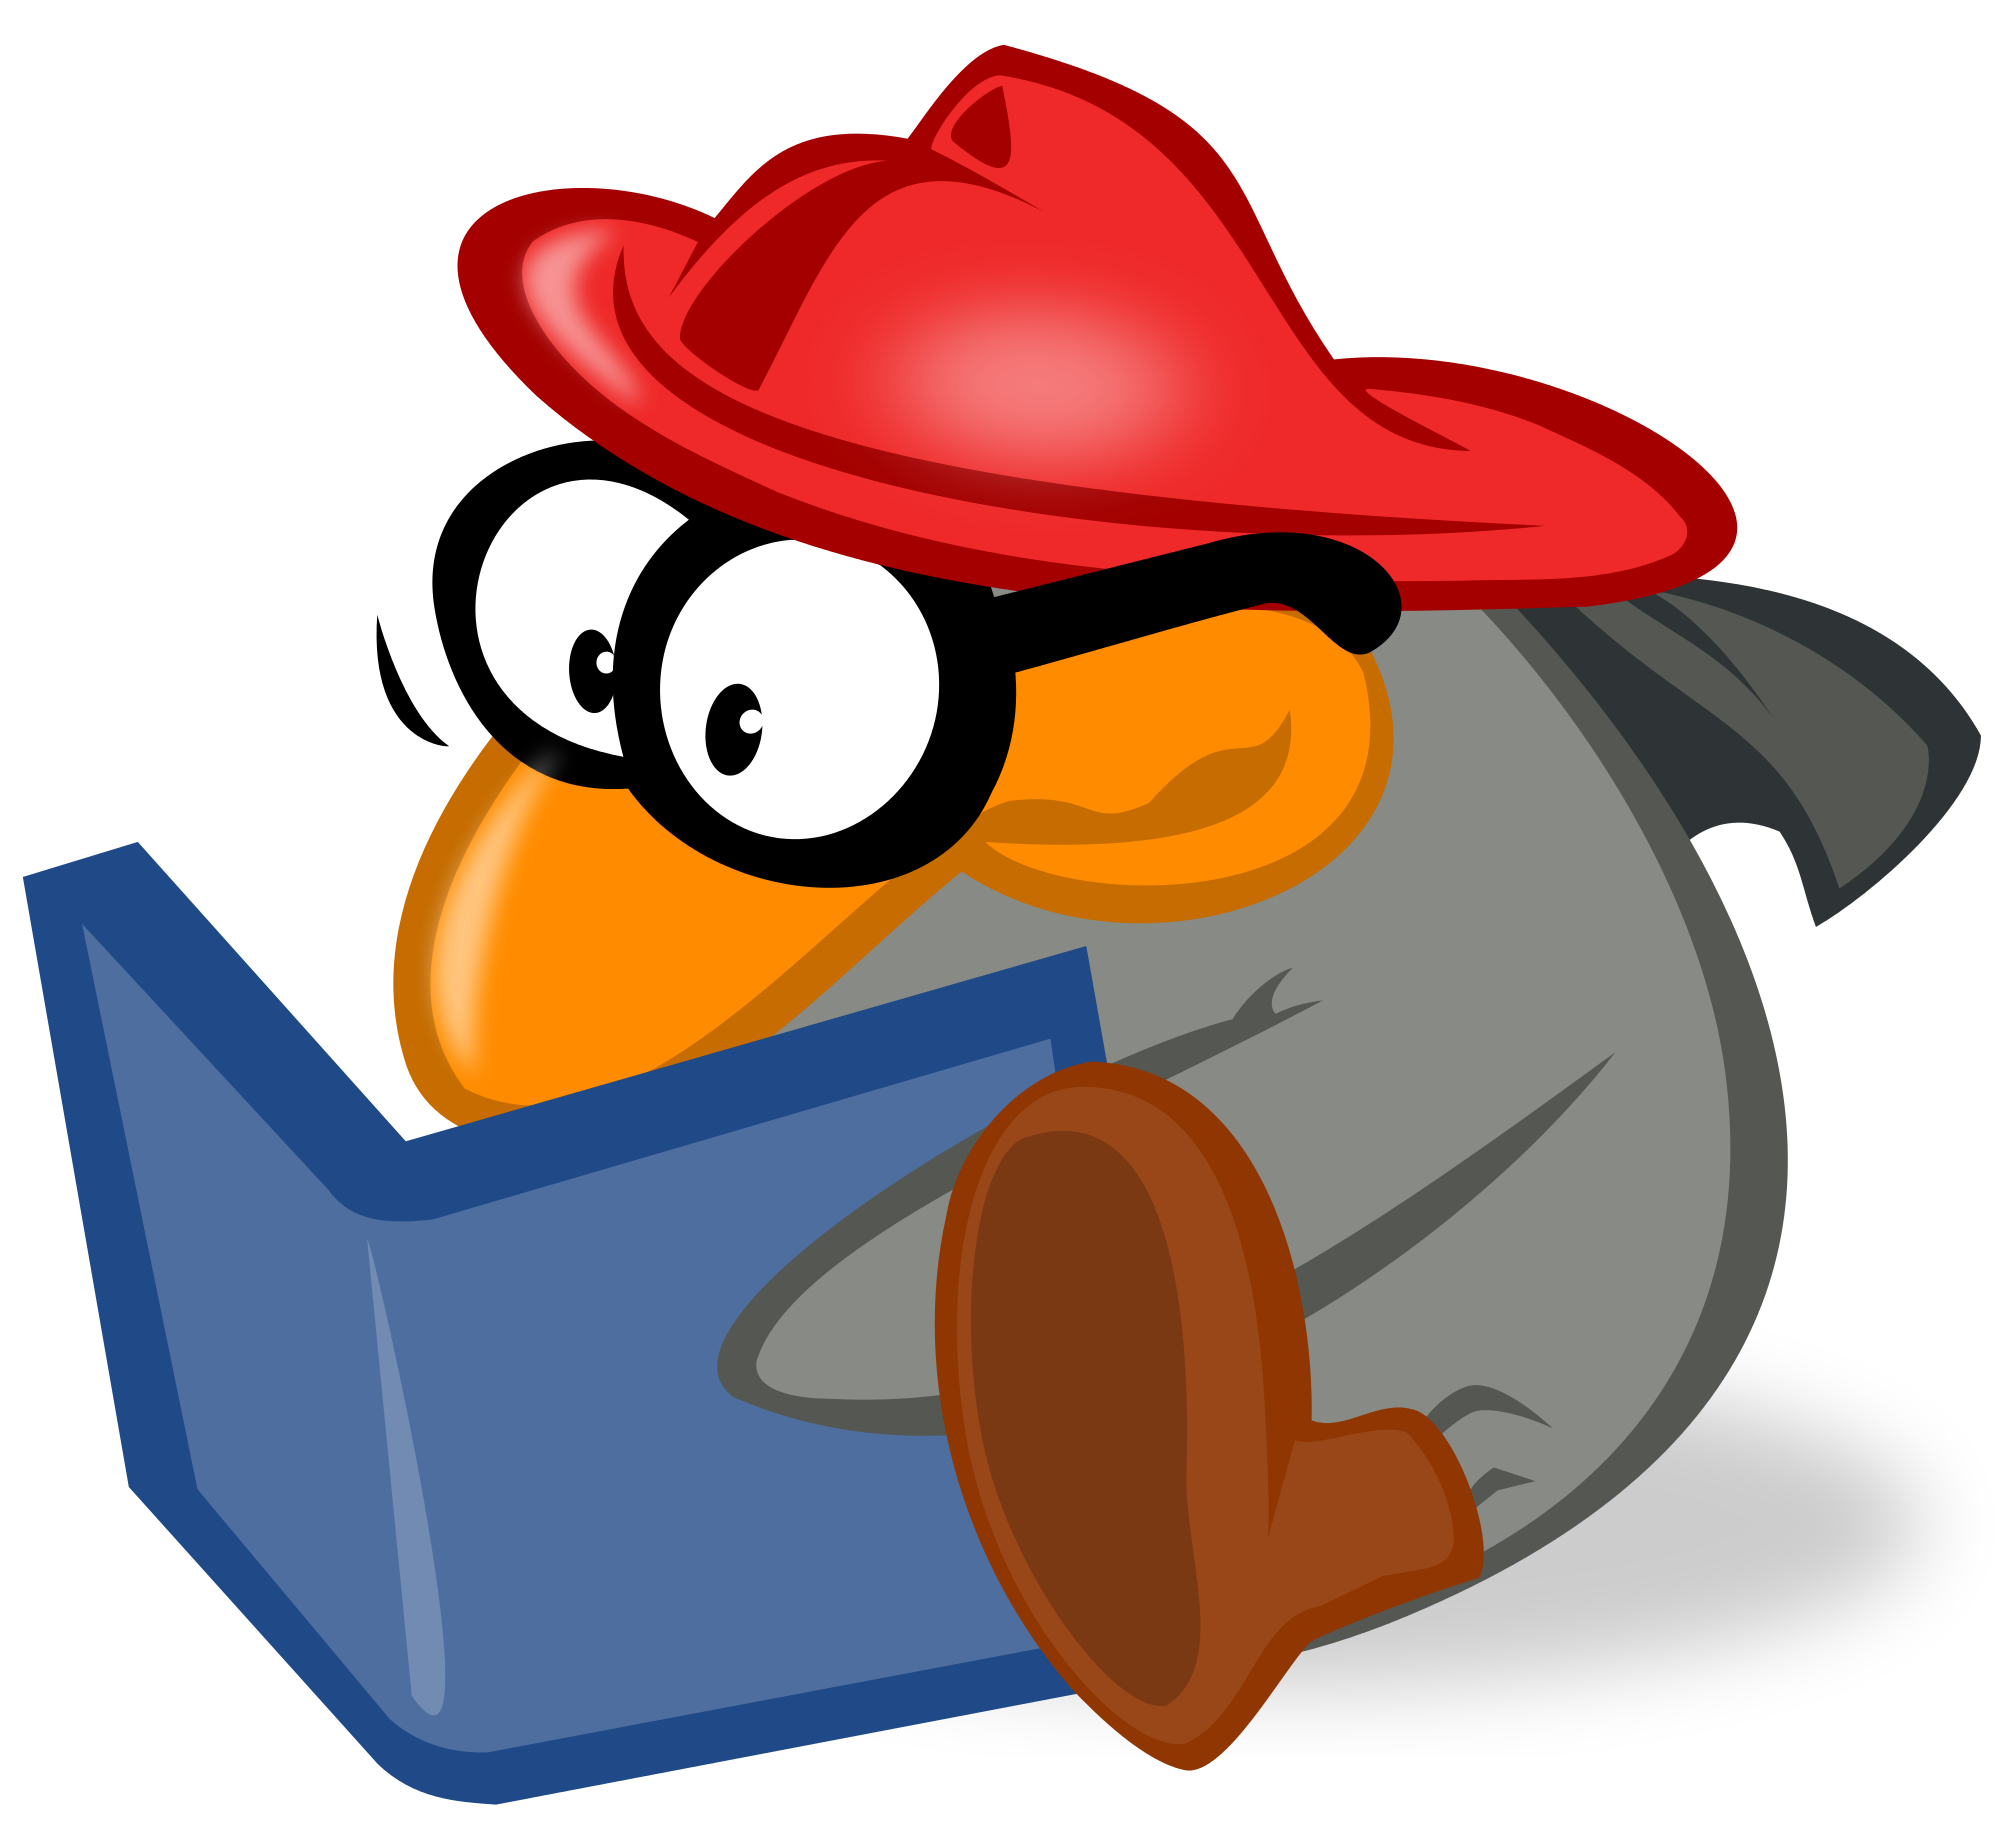 Penguin reading a book clipart clipart freeuse download File:Penguin reading by mimooh.svg - Wikimedia Commons clipart freeuse download